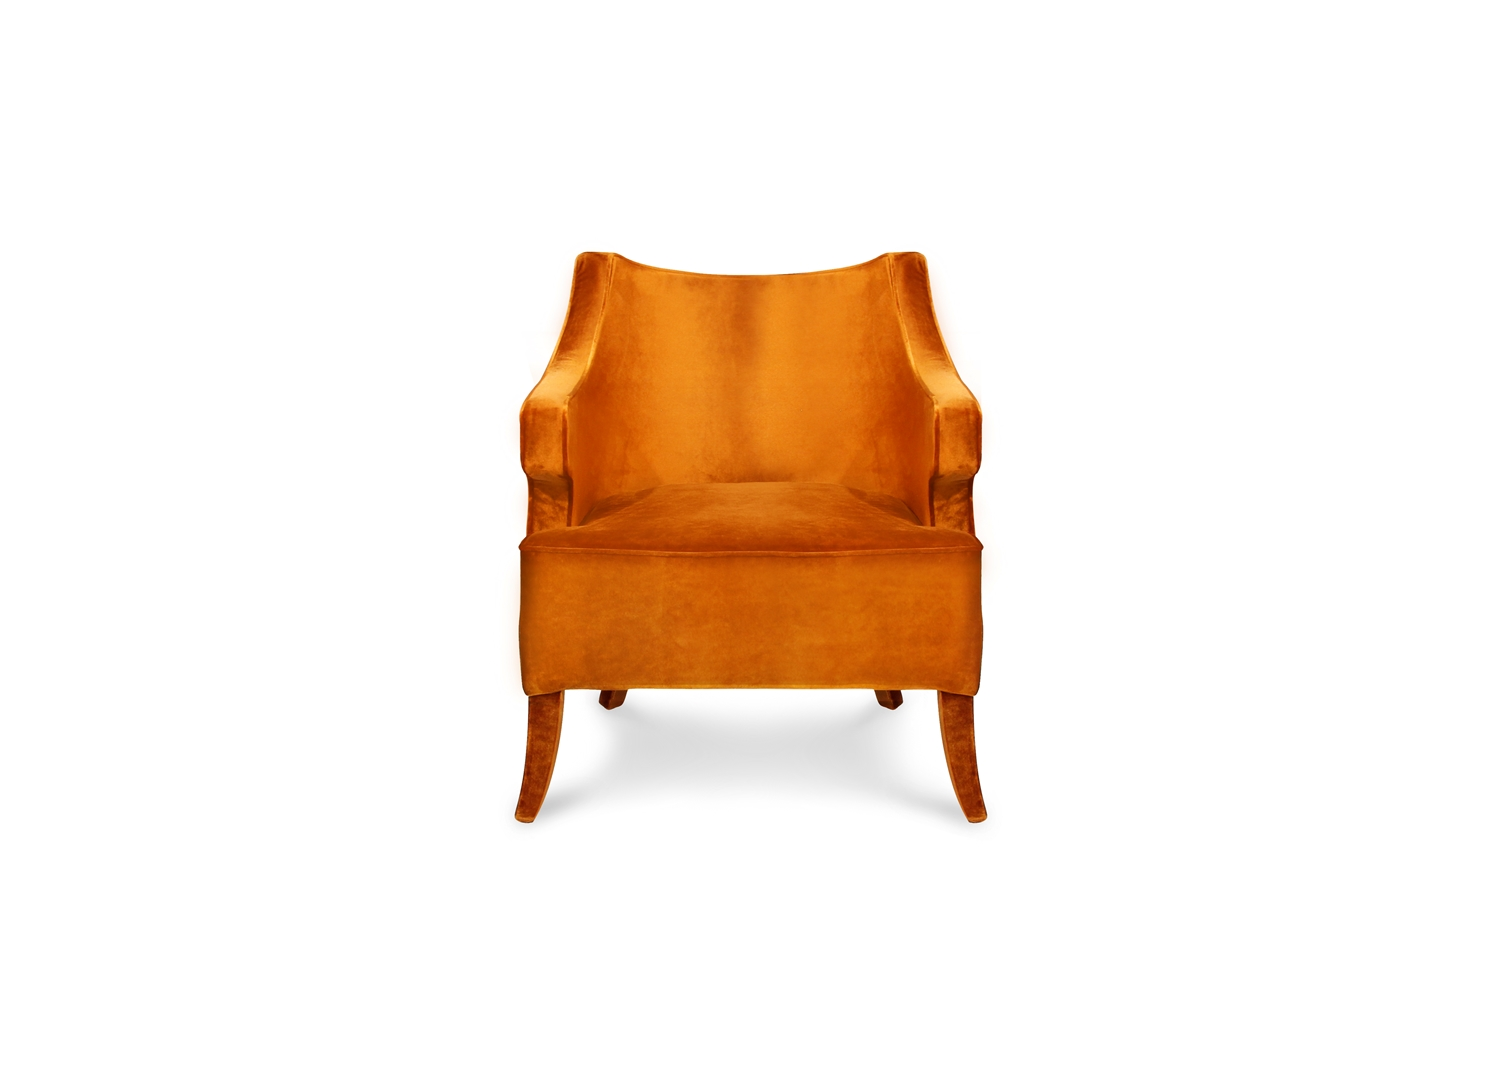 java-armchair-1-HR (Copy)